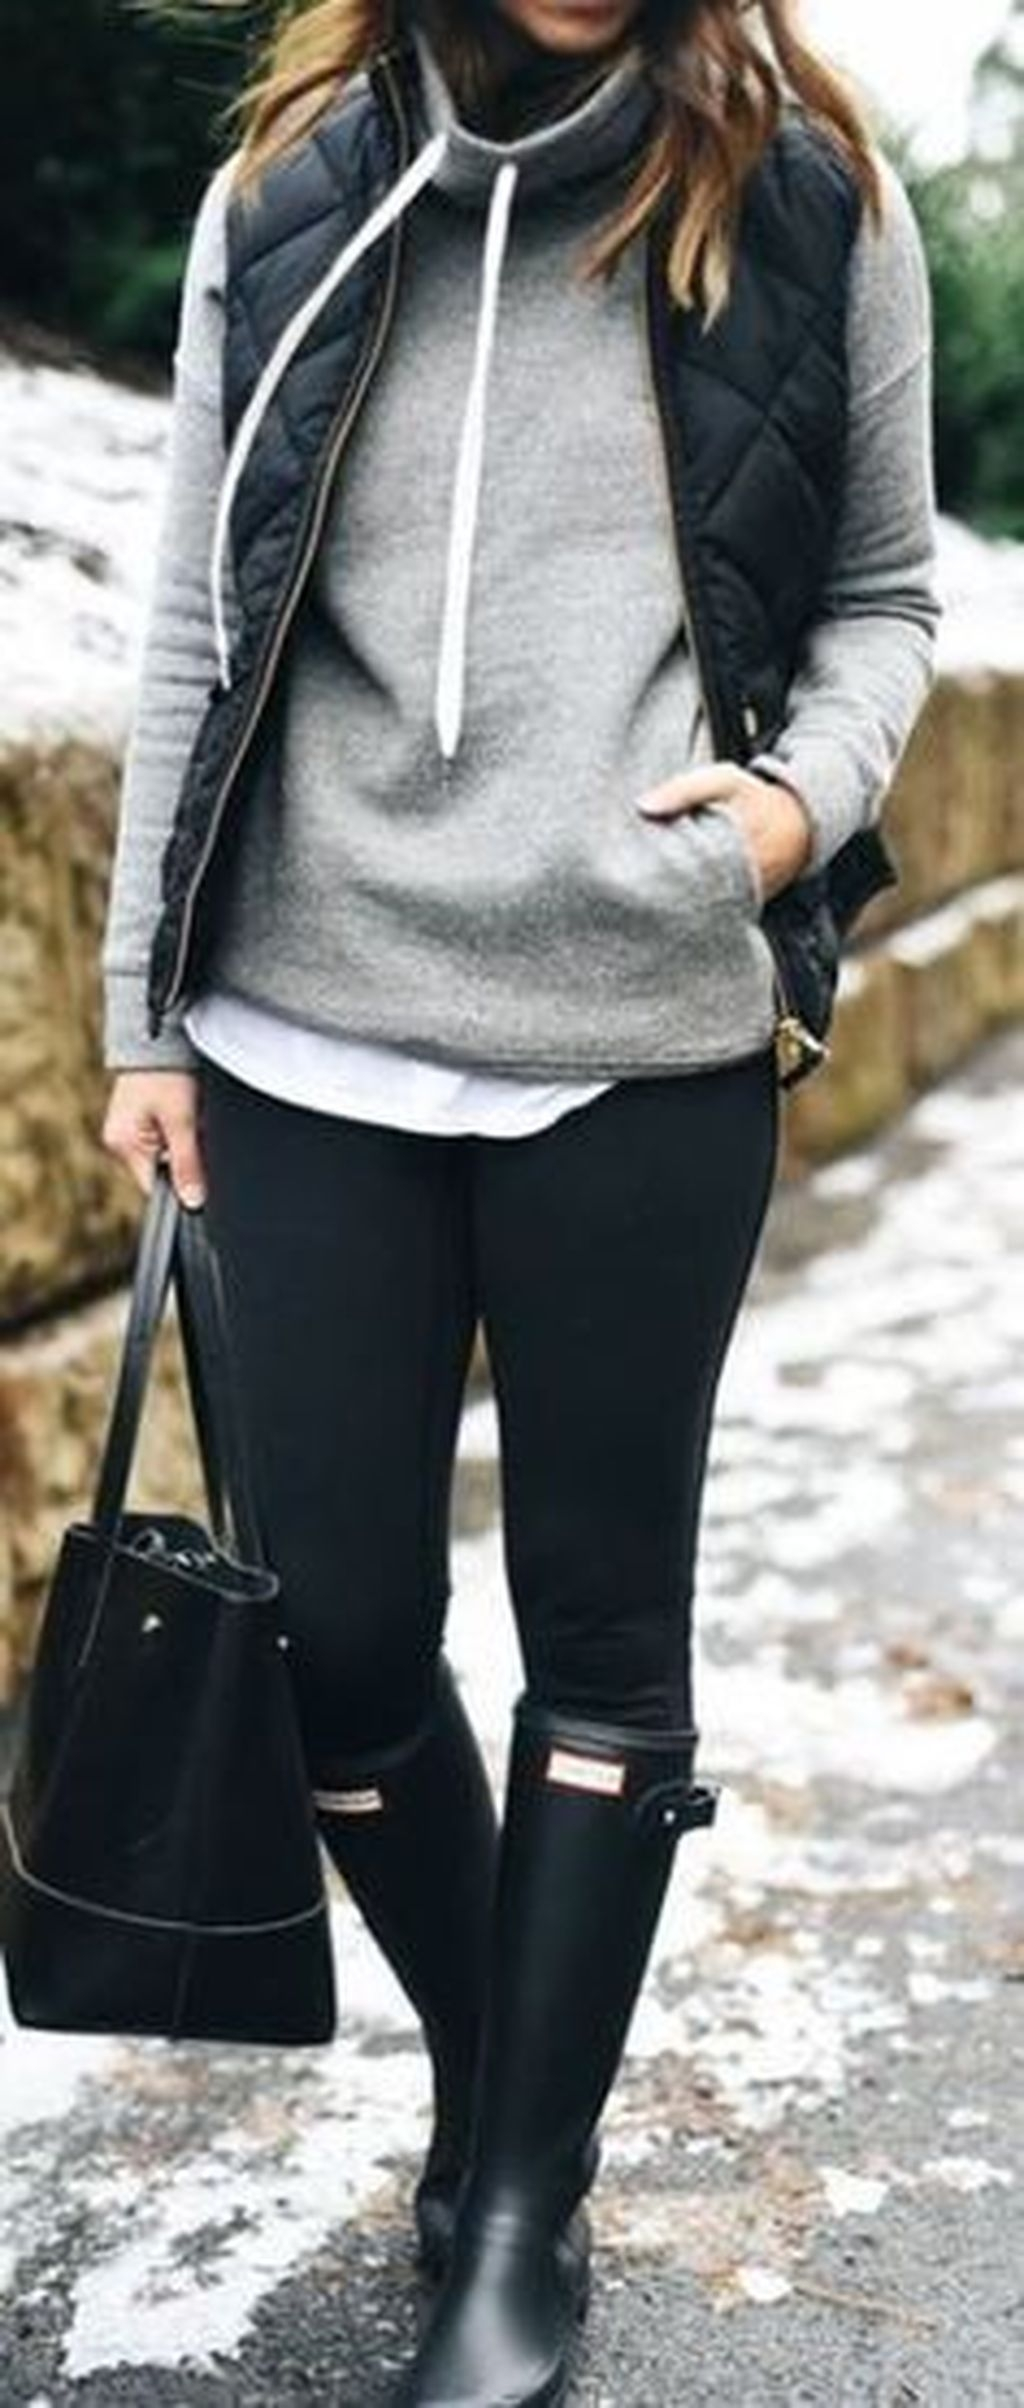 44 Classy Winter Outfits Ideas For School Addicfashion